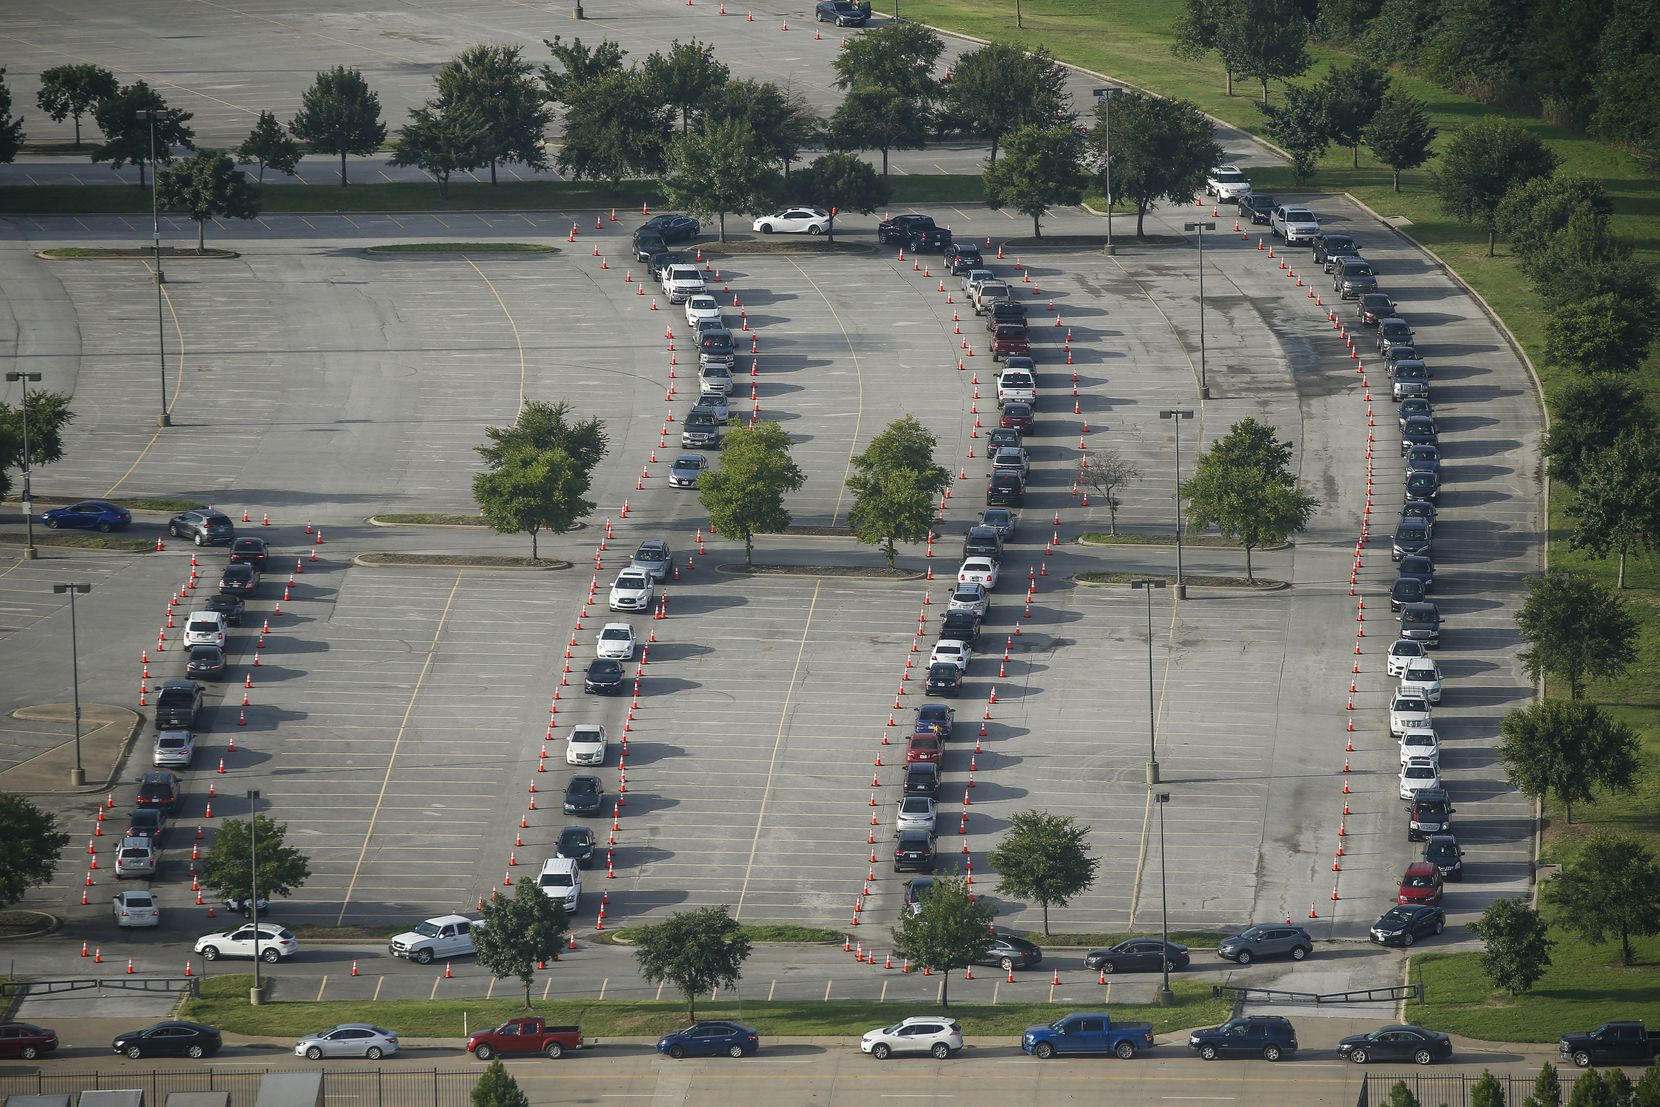 Hundreds of cars weaved around Ellis Davis Field House in the Red Bird area of southern Dallas on June 26 as residents waited to be tested for COVID-19. Since the pandemic began, several area locations have offered free screening for the virus.